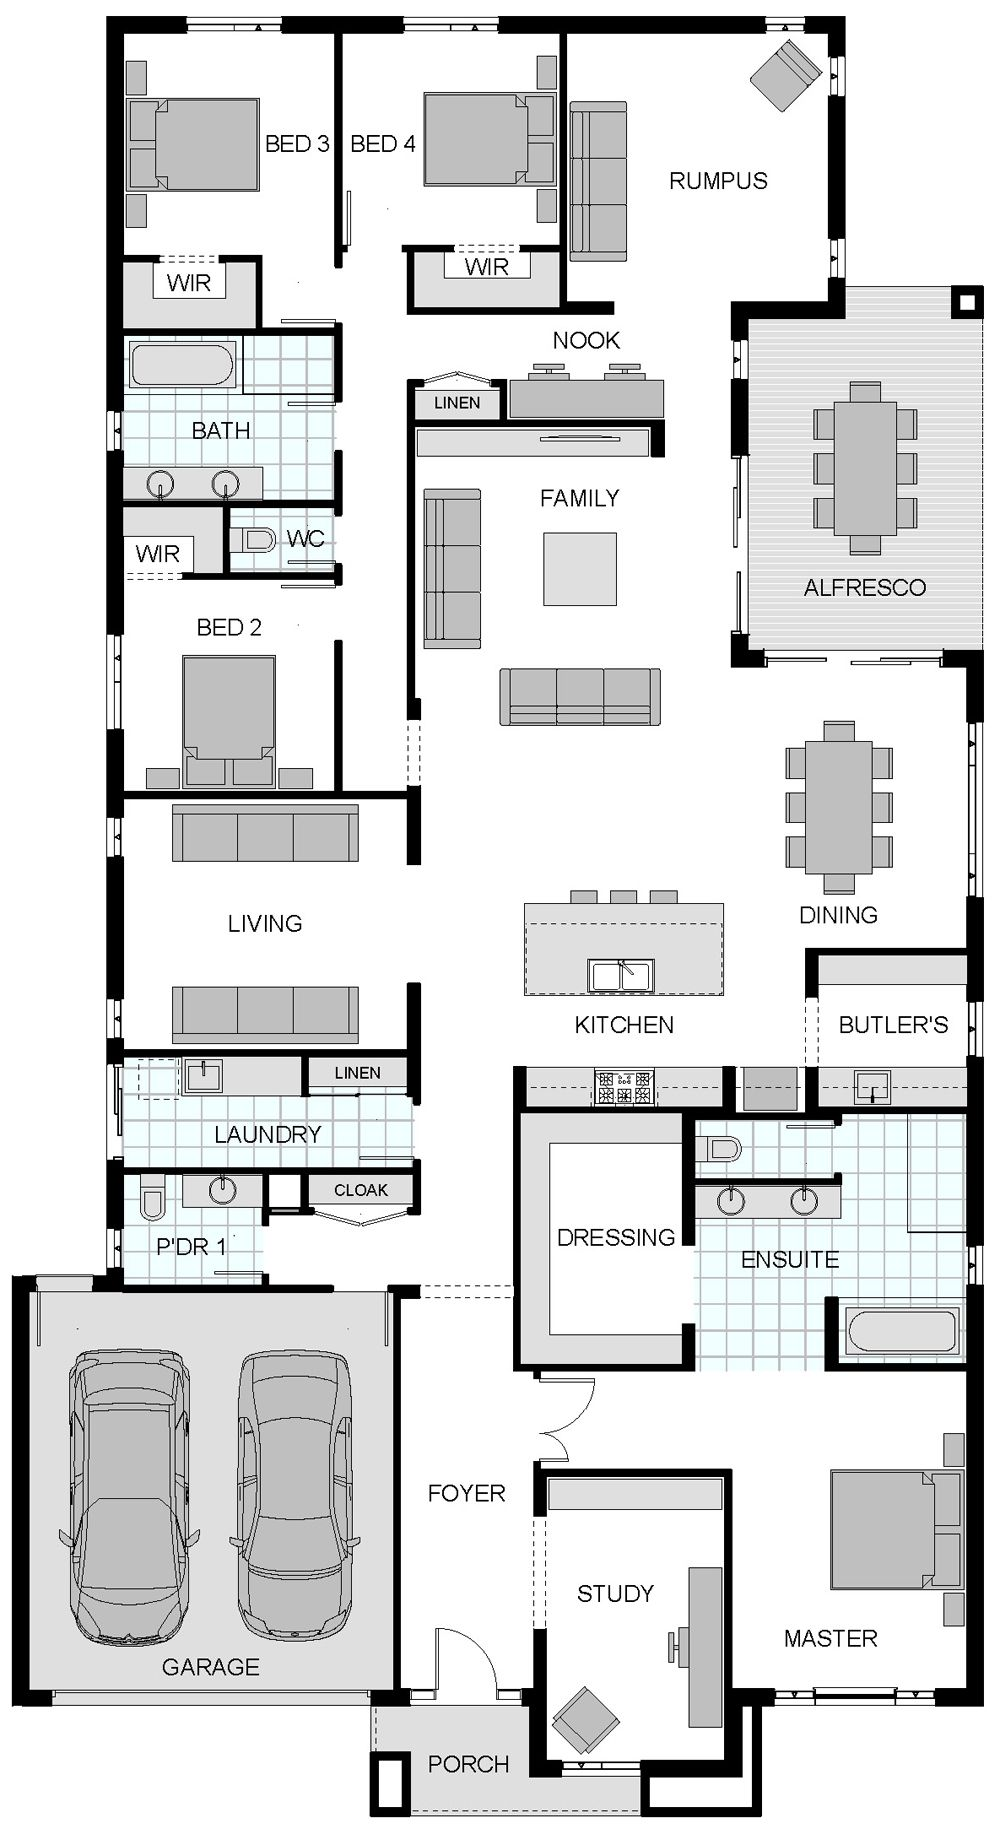 Bed And Breakfast Inn Chateau House Plans Bed And Breakfast Inn Bed And Breakfast Bed N Breakfast